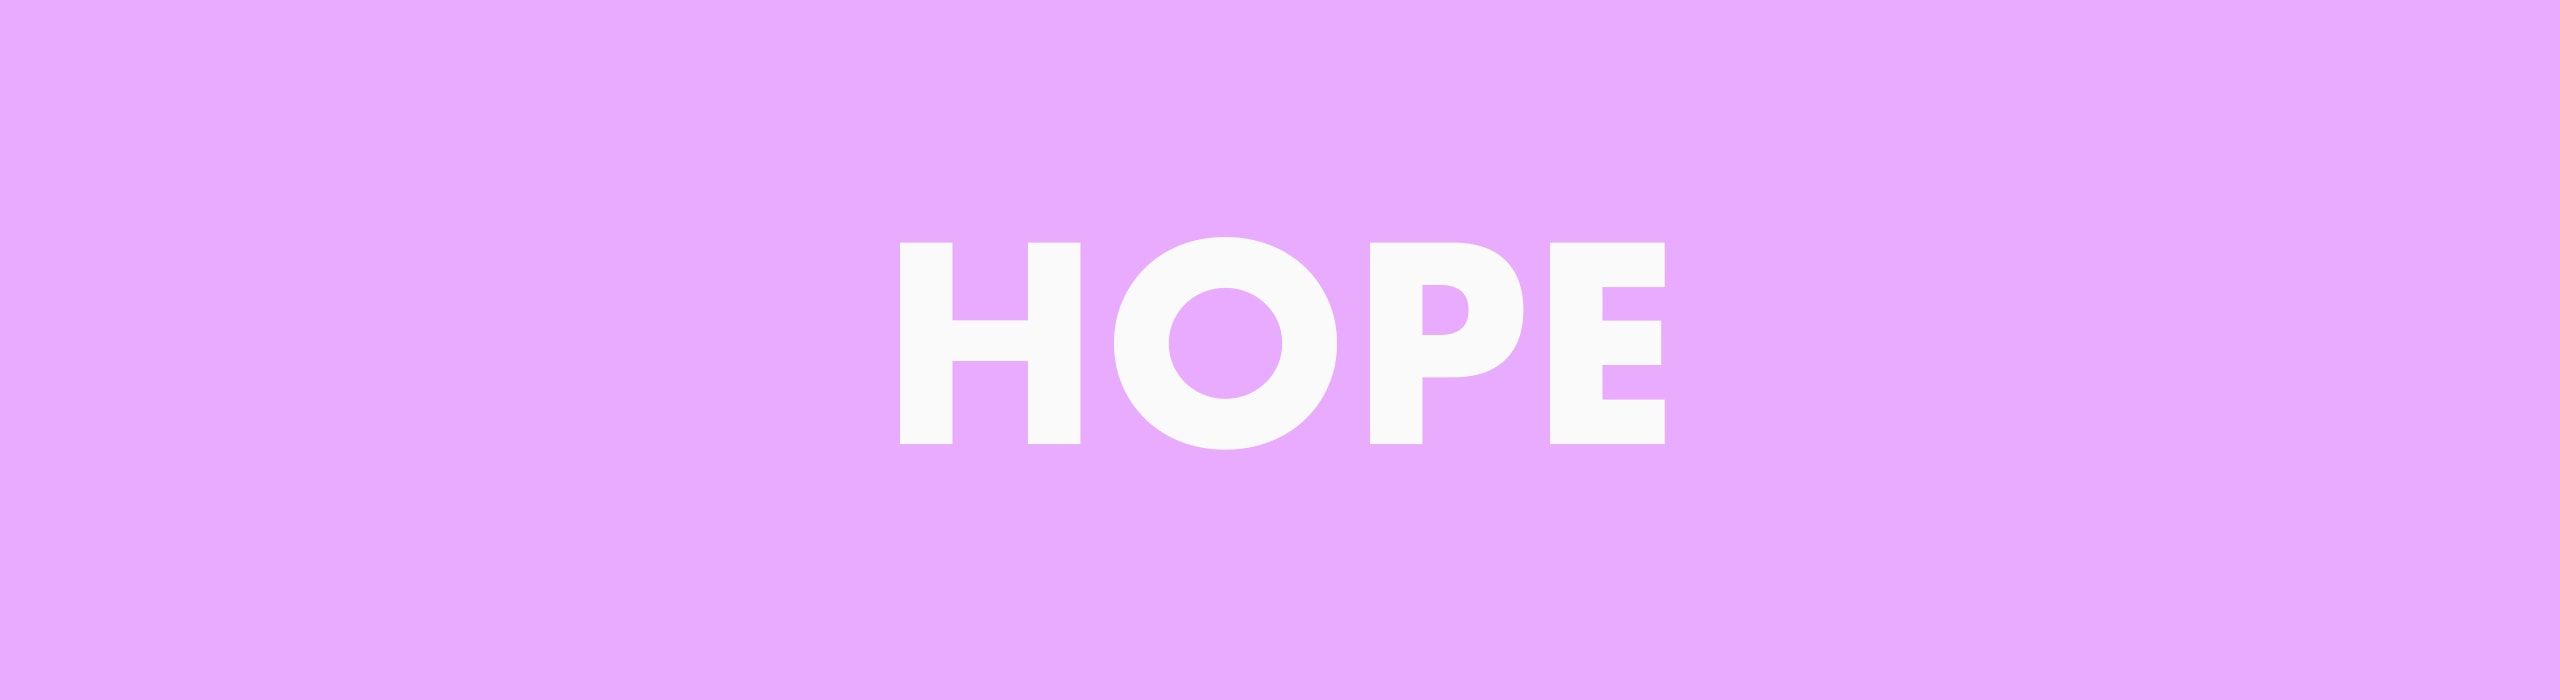 Vibe Israel - hope final - Natie Branding Agency